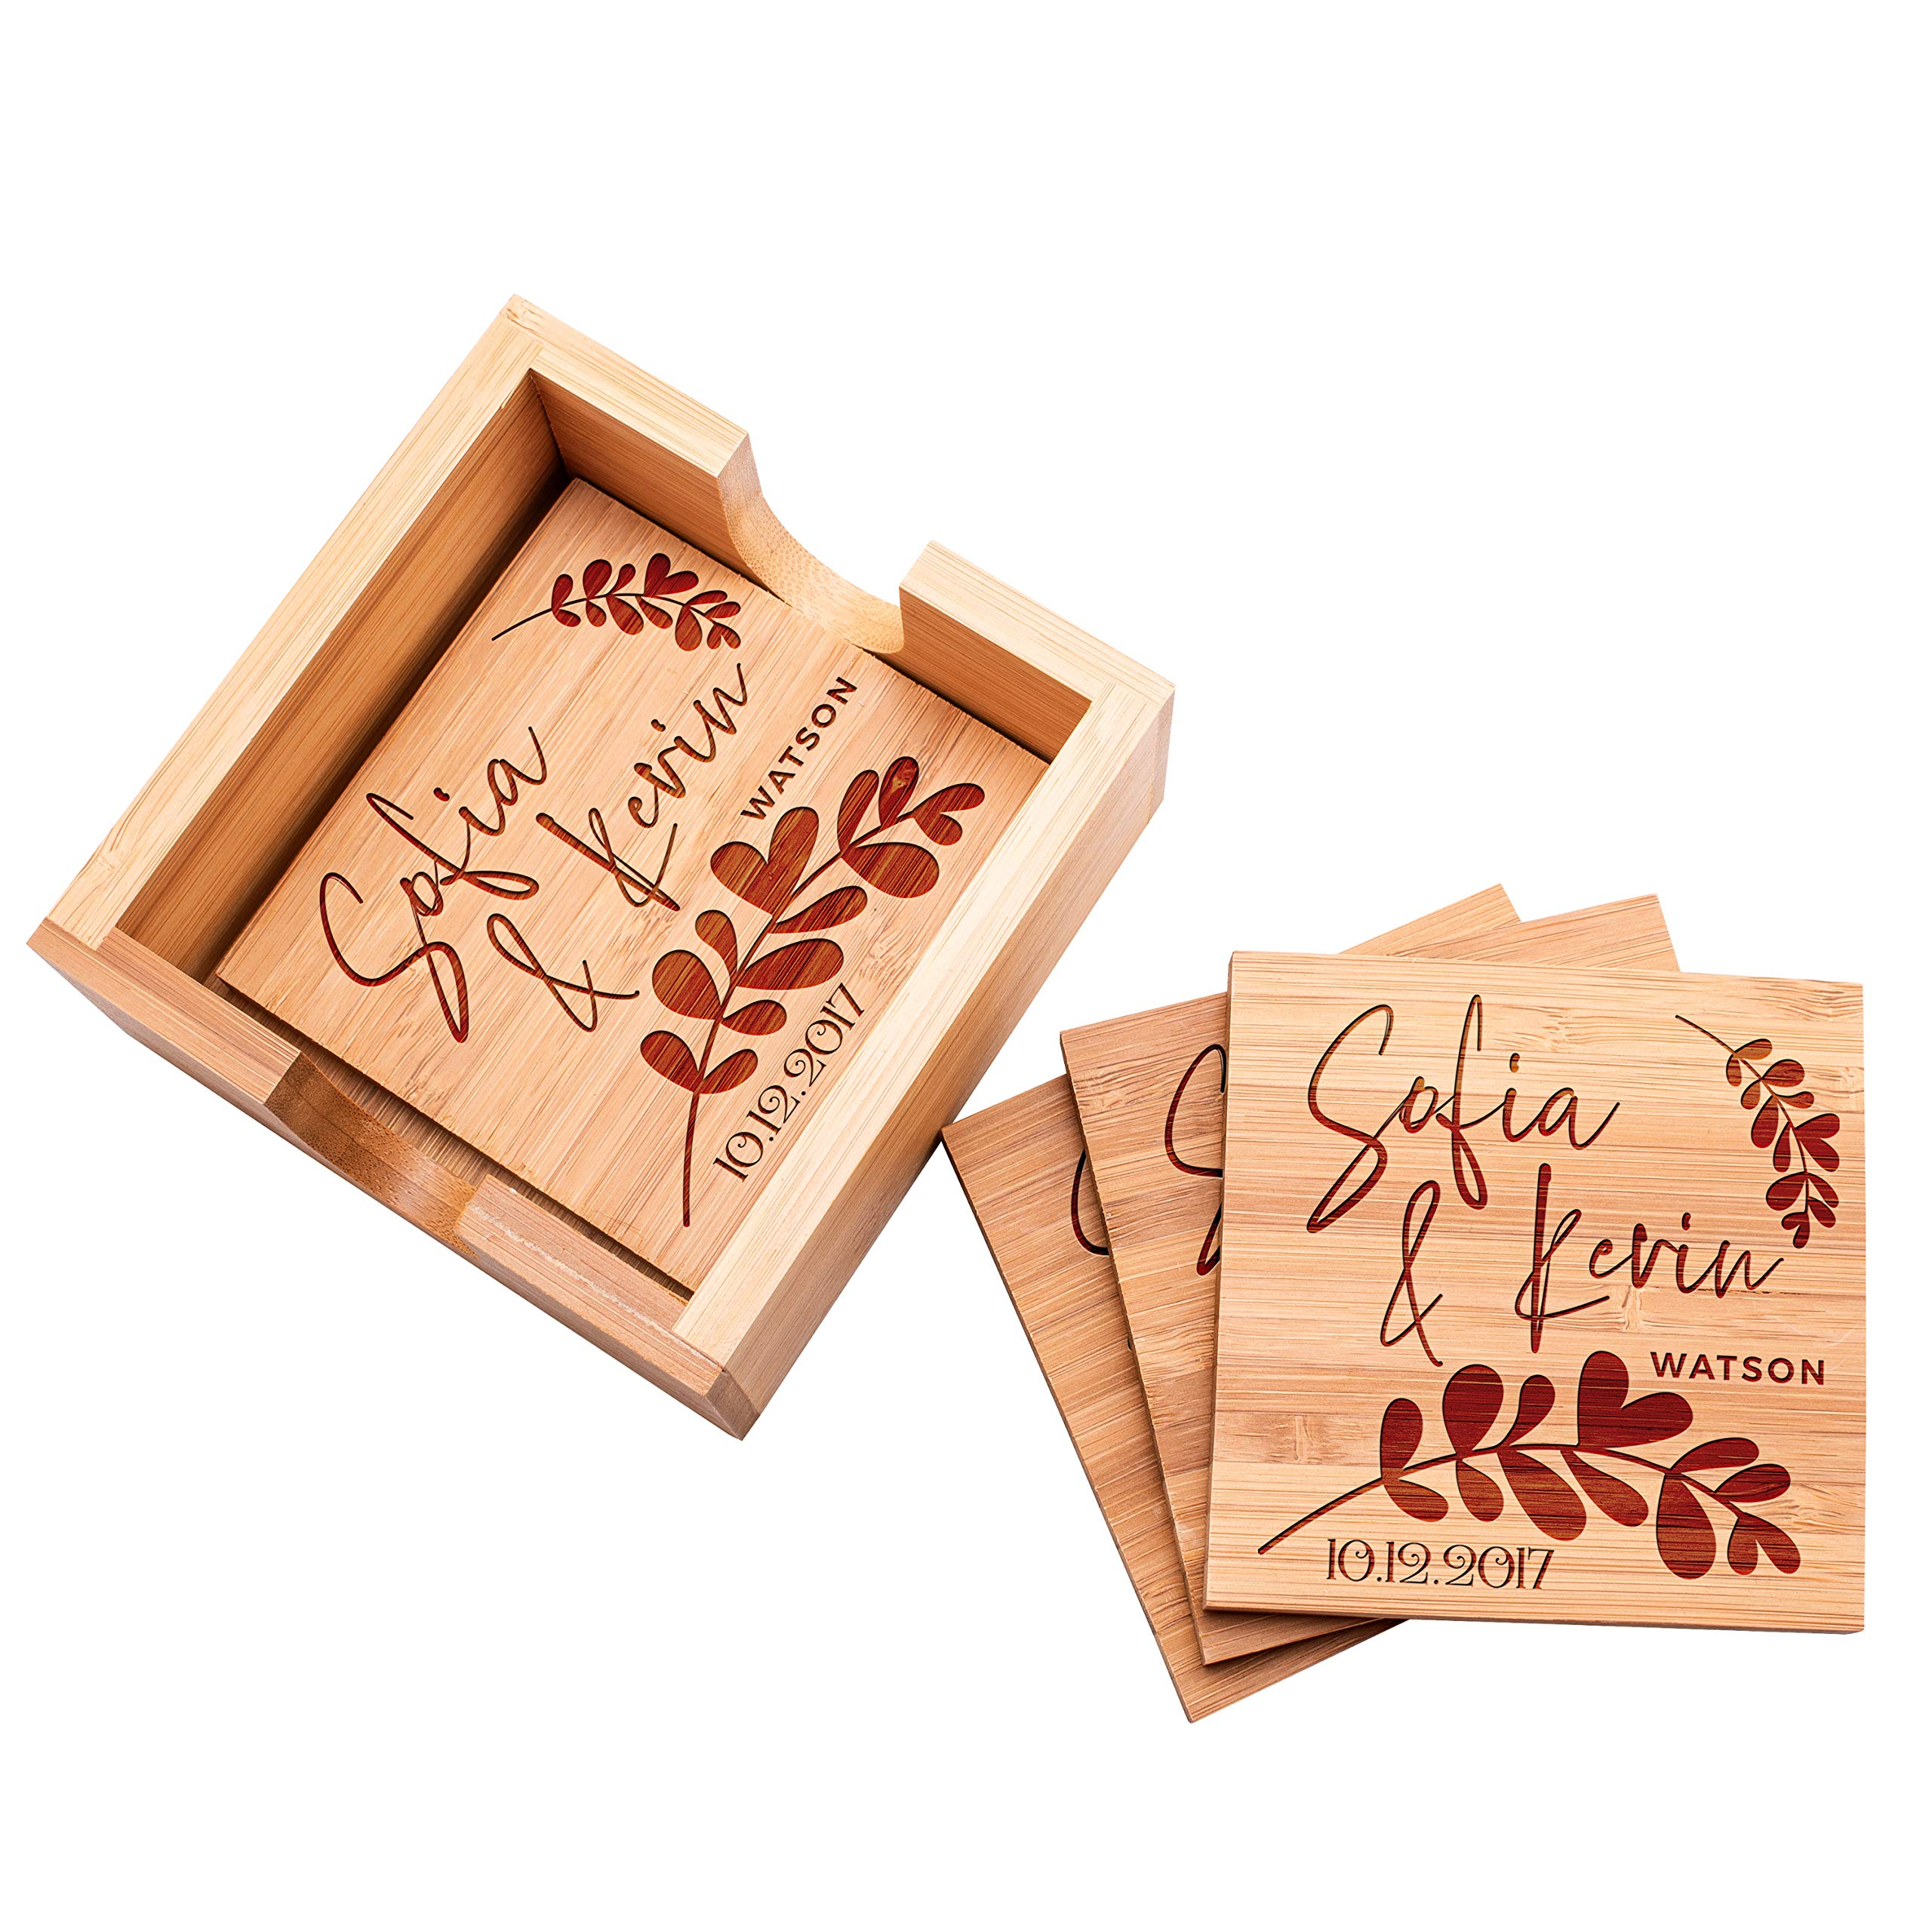 Be Burgundy - Personalized Name Coaster with Holder - 4 pcs Bamboo 4'' x 4'' Square Personalized Coasters - FREE ENGRAVING - Bamboo Coasters for Drinks with Holders - 2 by Be Burgundy